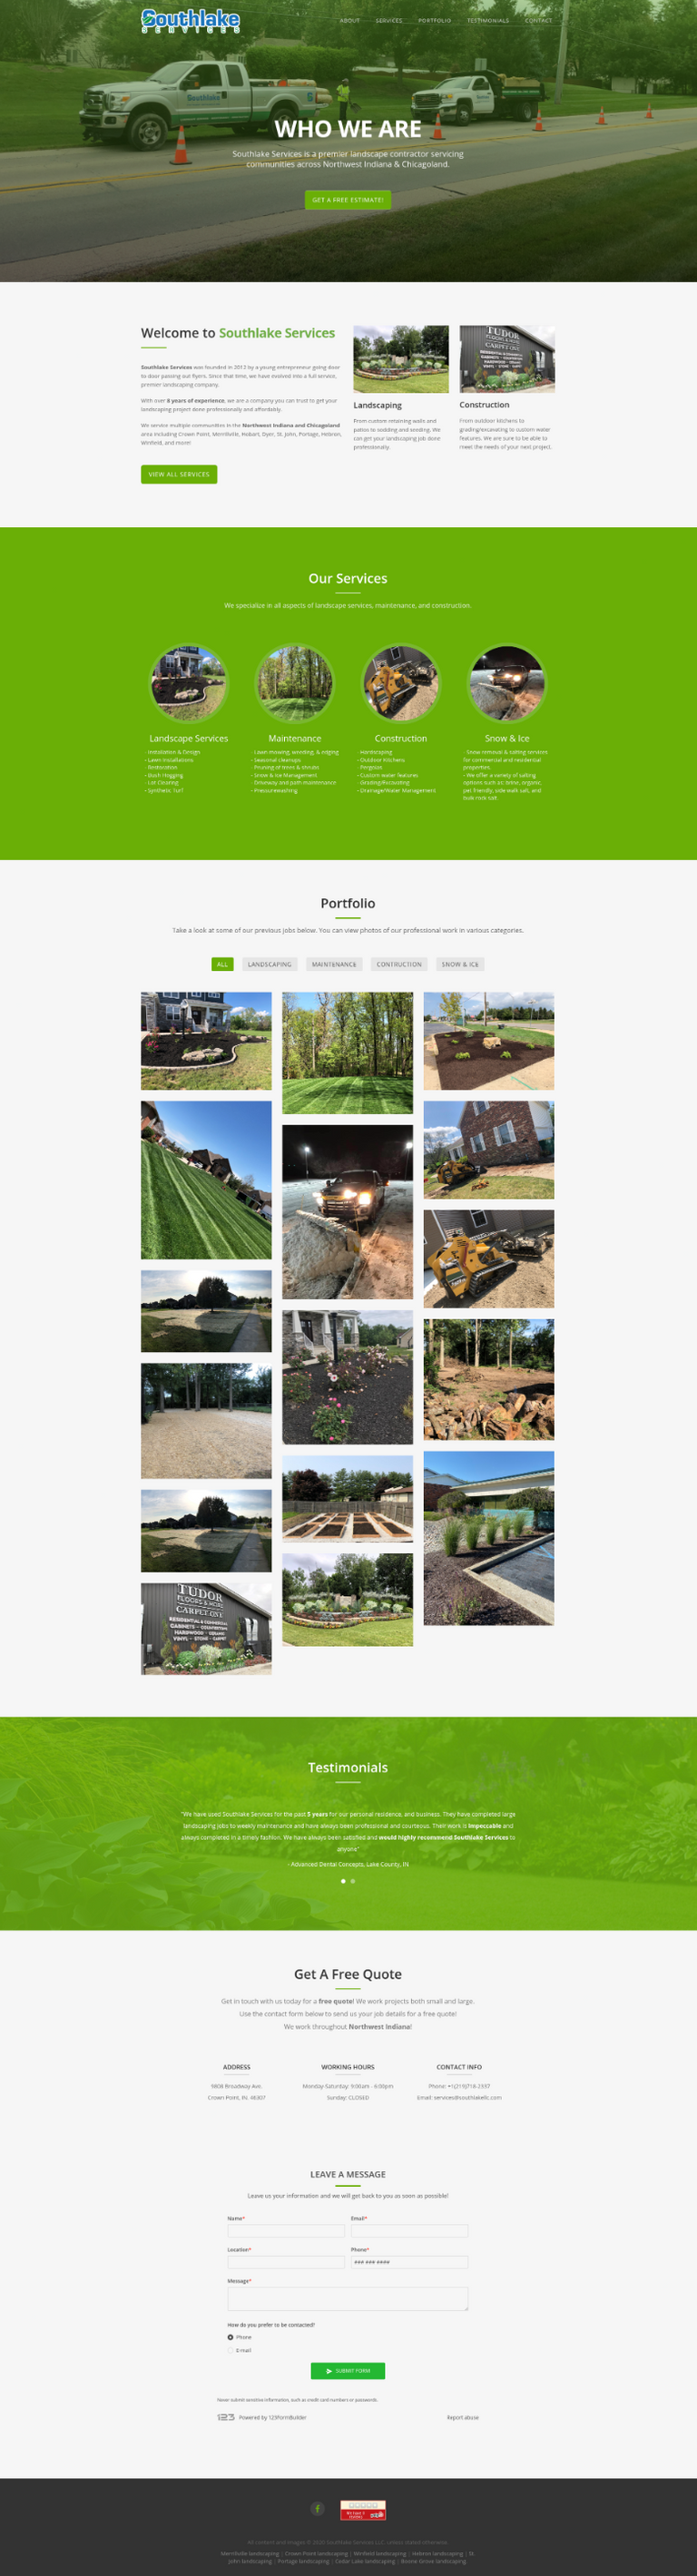 FireShot Capture 004  Southlake Services  Northwest Indiana landscaping, construction, and_  www.southlakellc.com.png